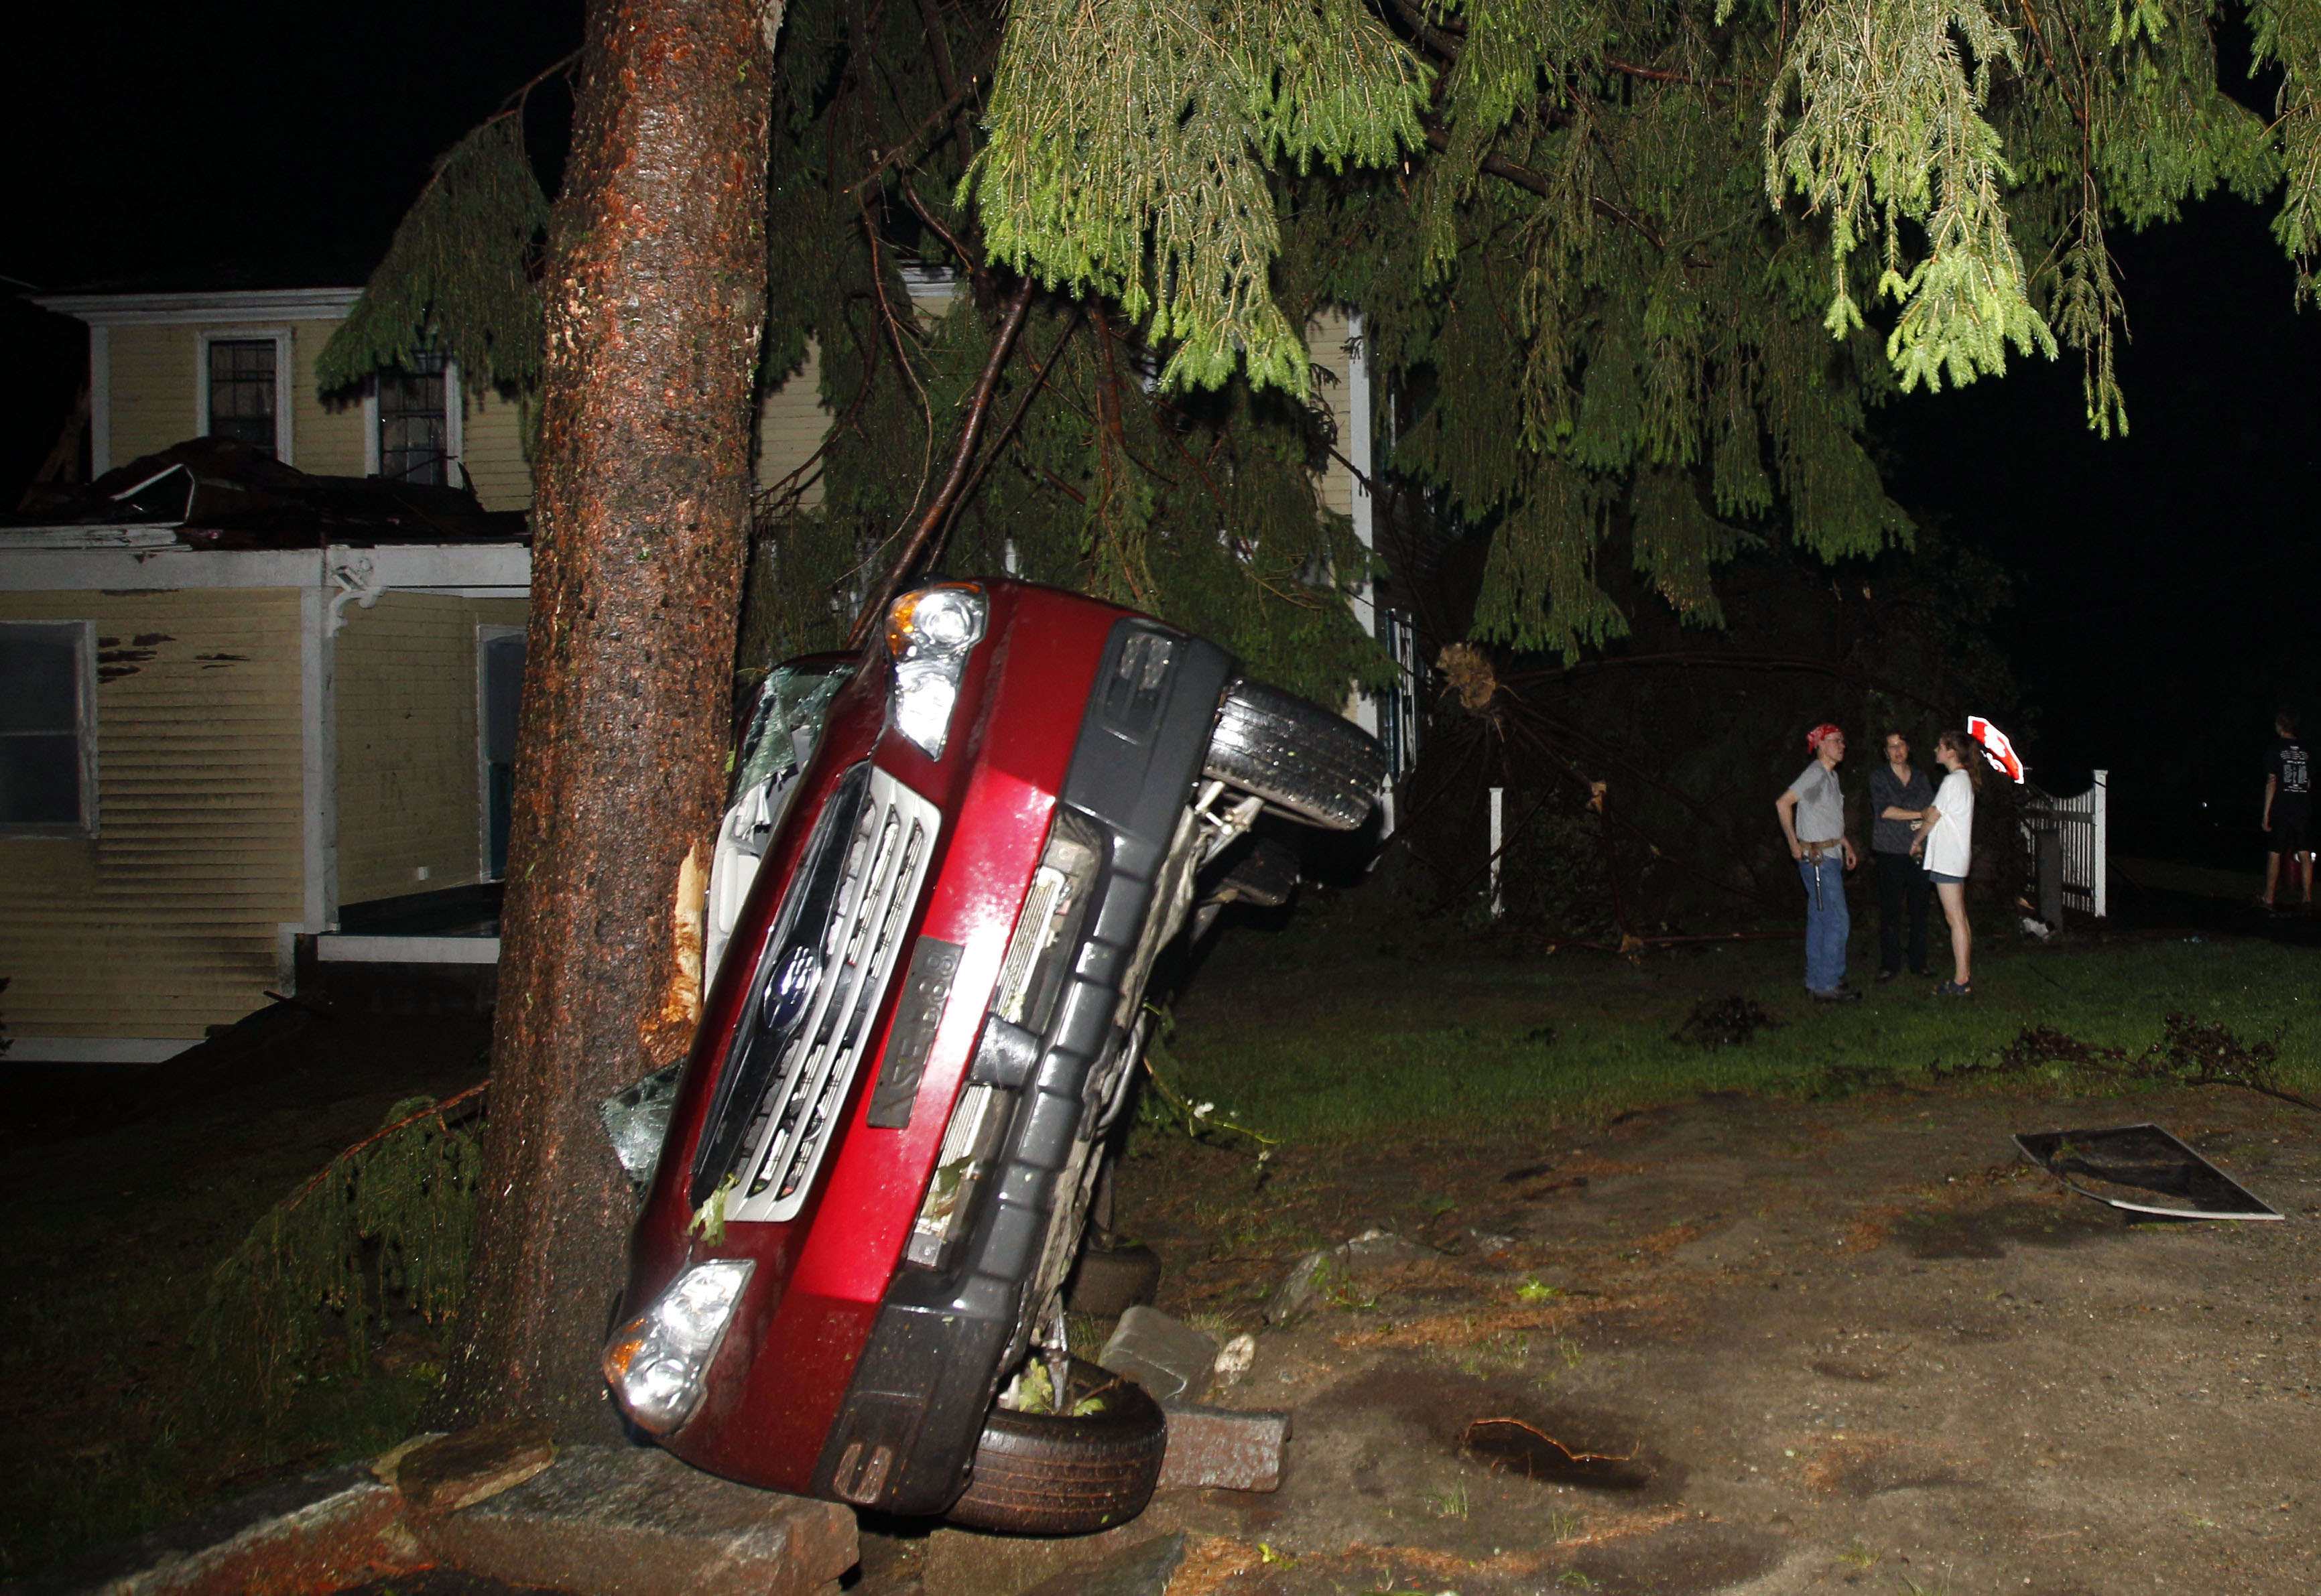 Residents gather in front of a house where a car lay smashed against a tree after a tornado swept through Monson, Mass. Wednesday, June 1, 2011.